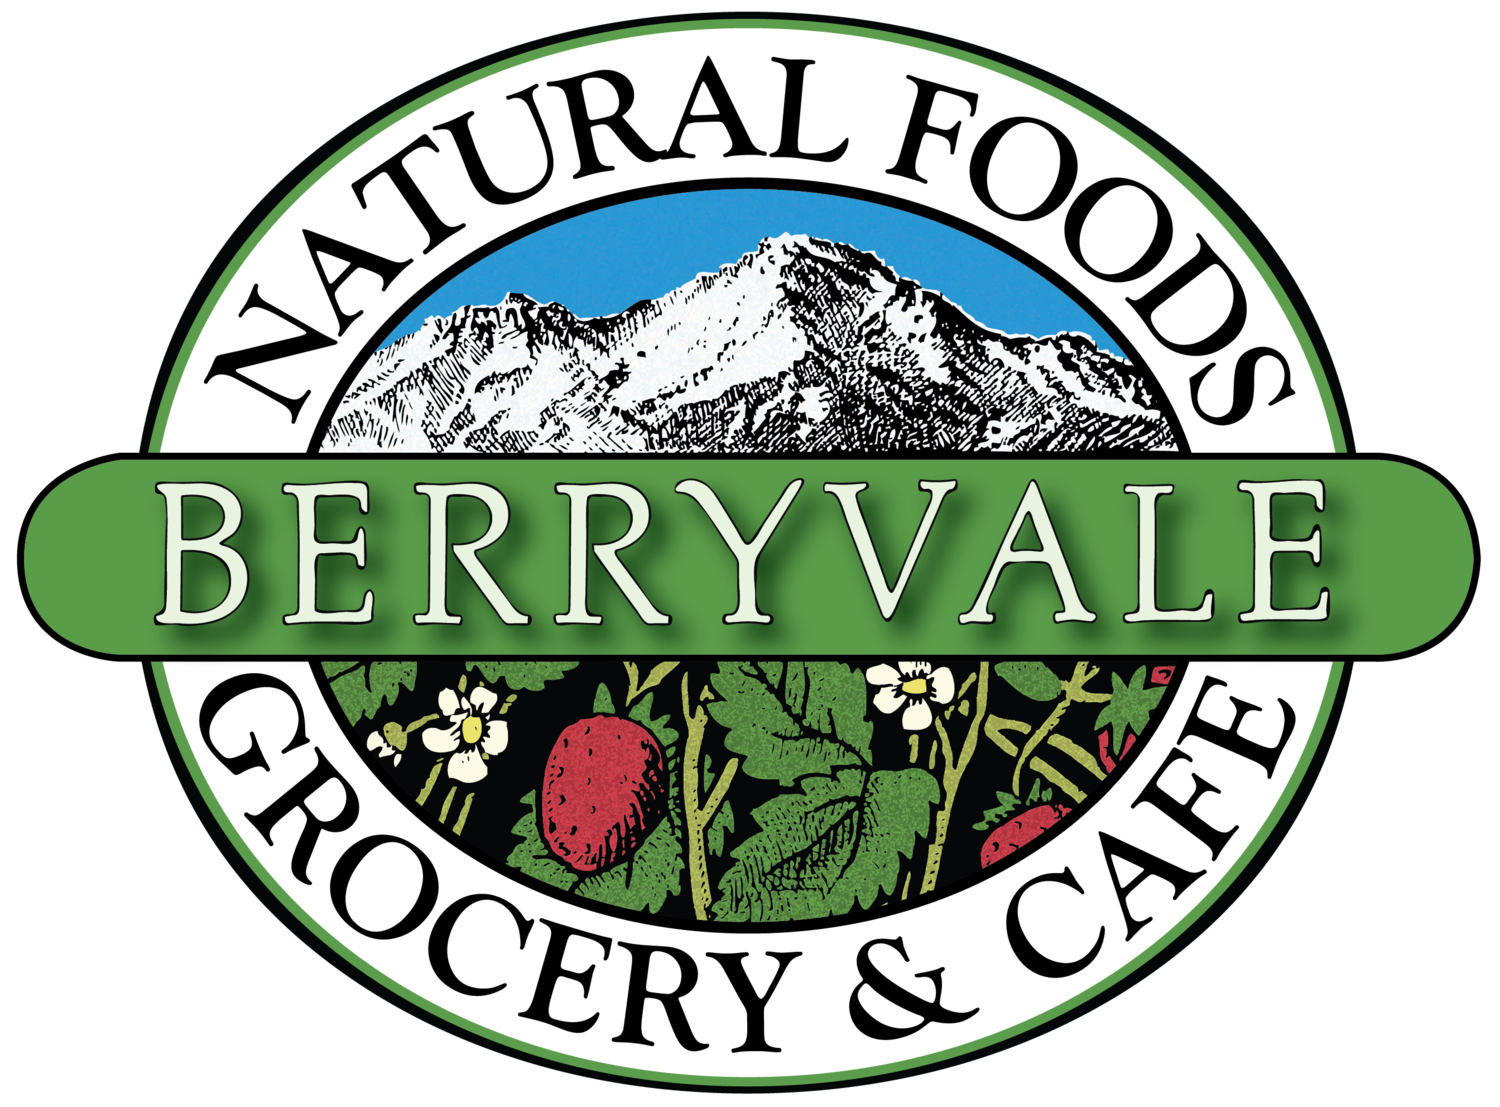 Berryvale Grocery